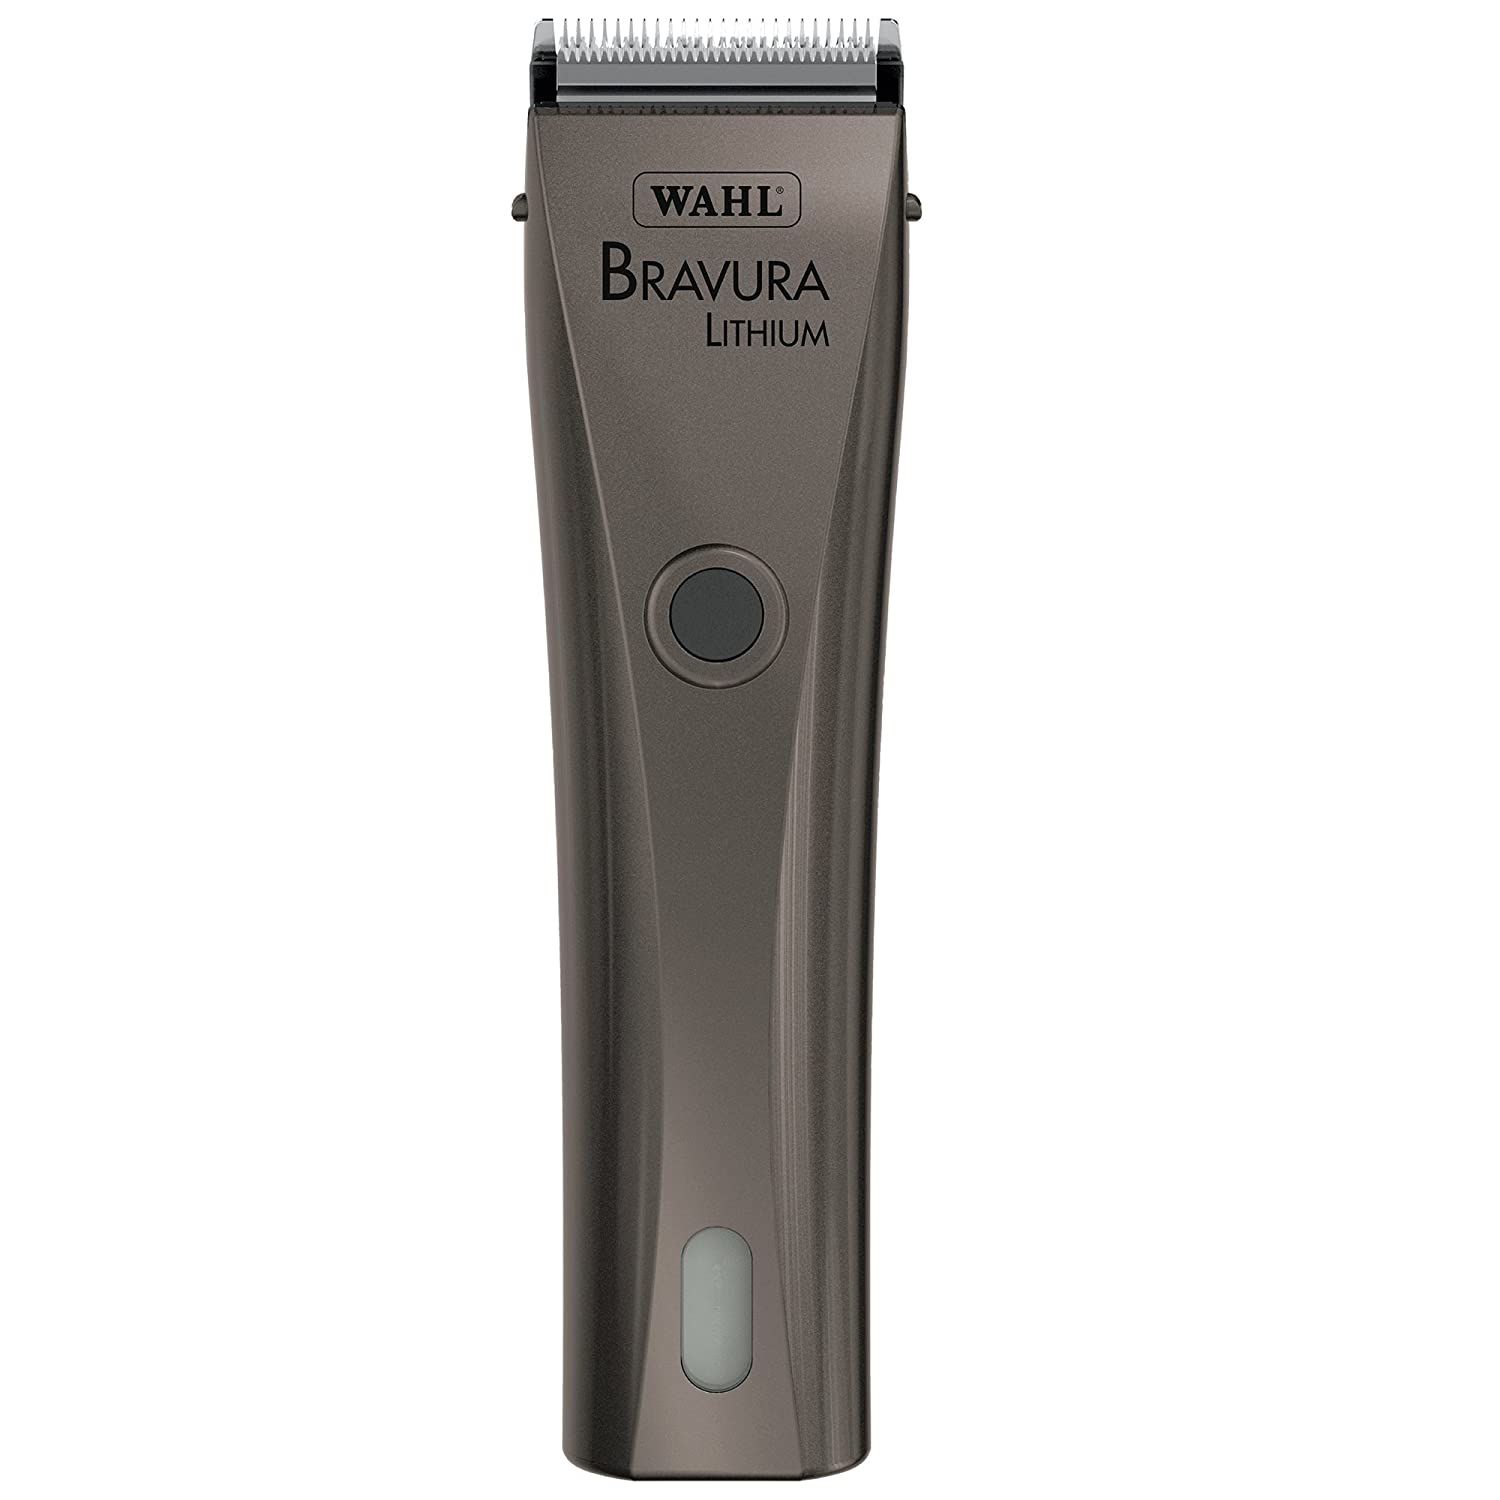 Wahl Professional Animal Bravura Cordless Clipper Kit